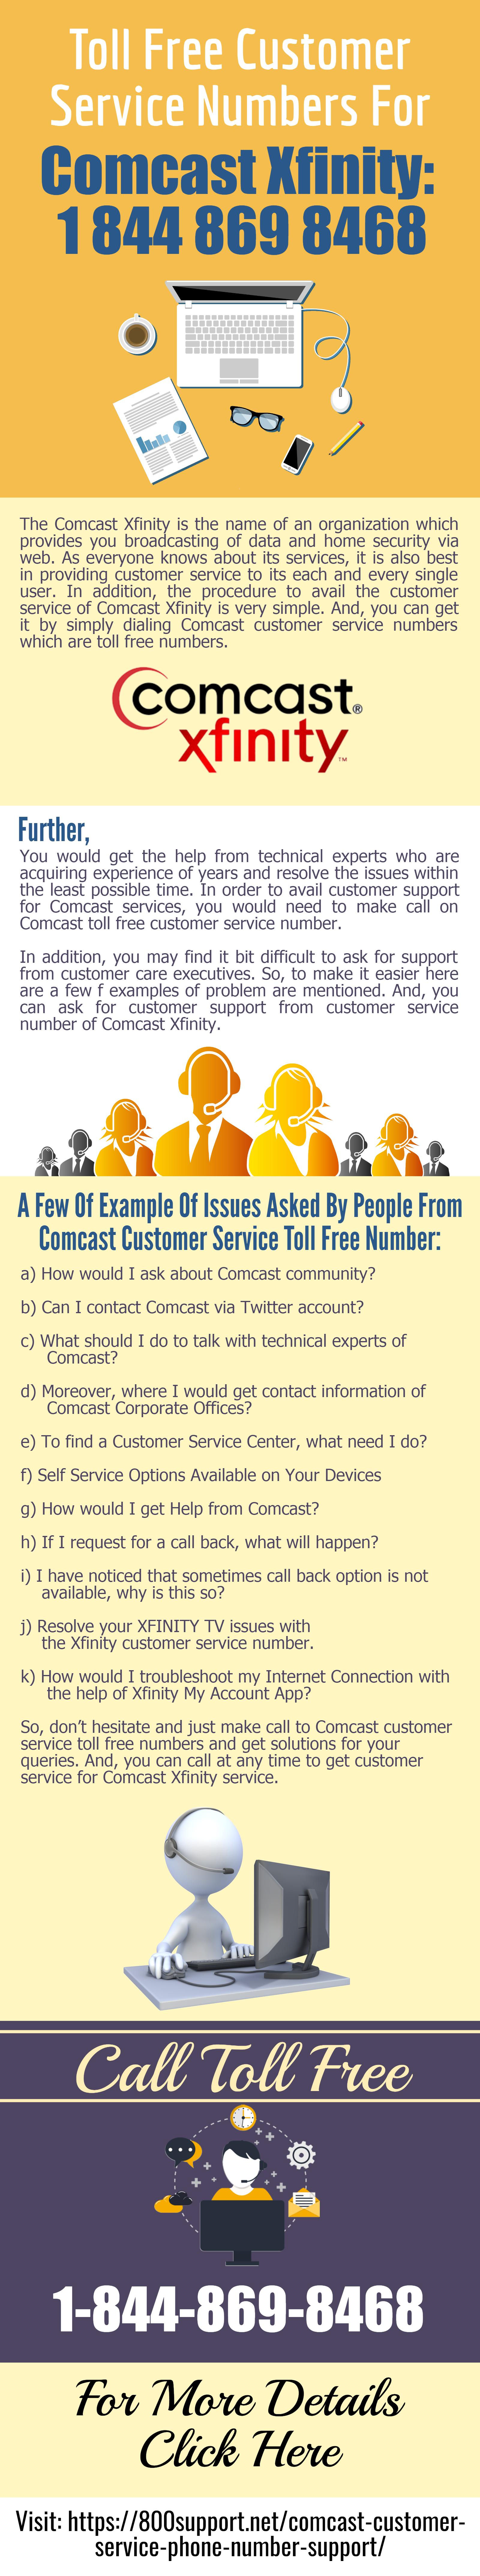 Pin by 800 Support on Comcast Support | Comcast xfinity ...